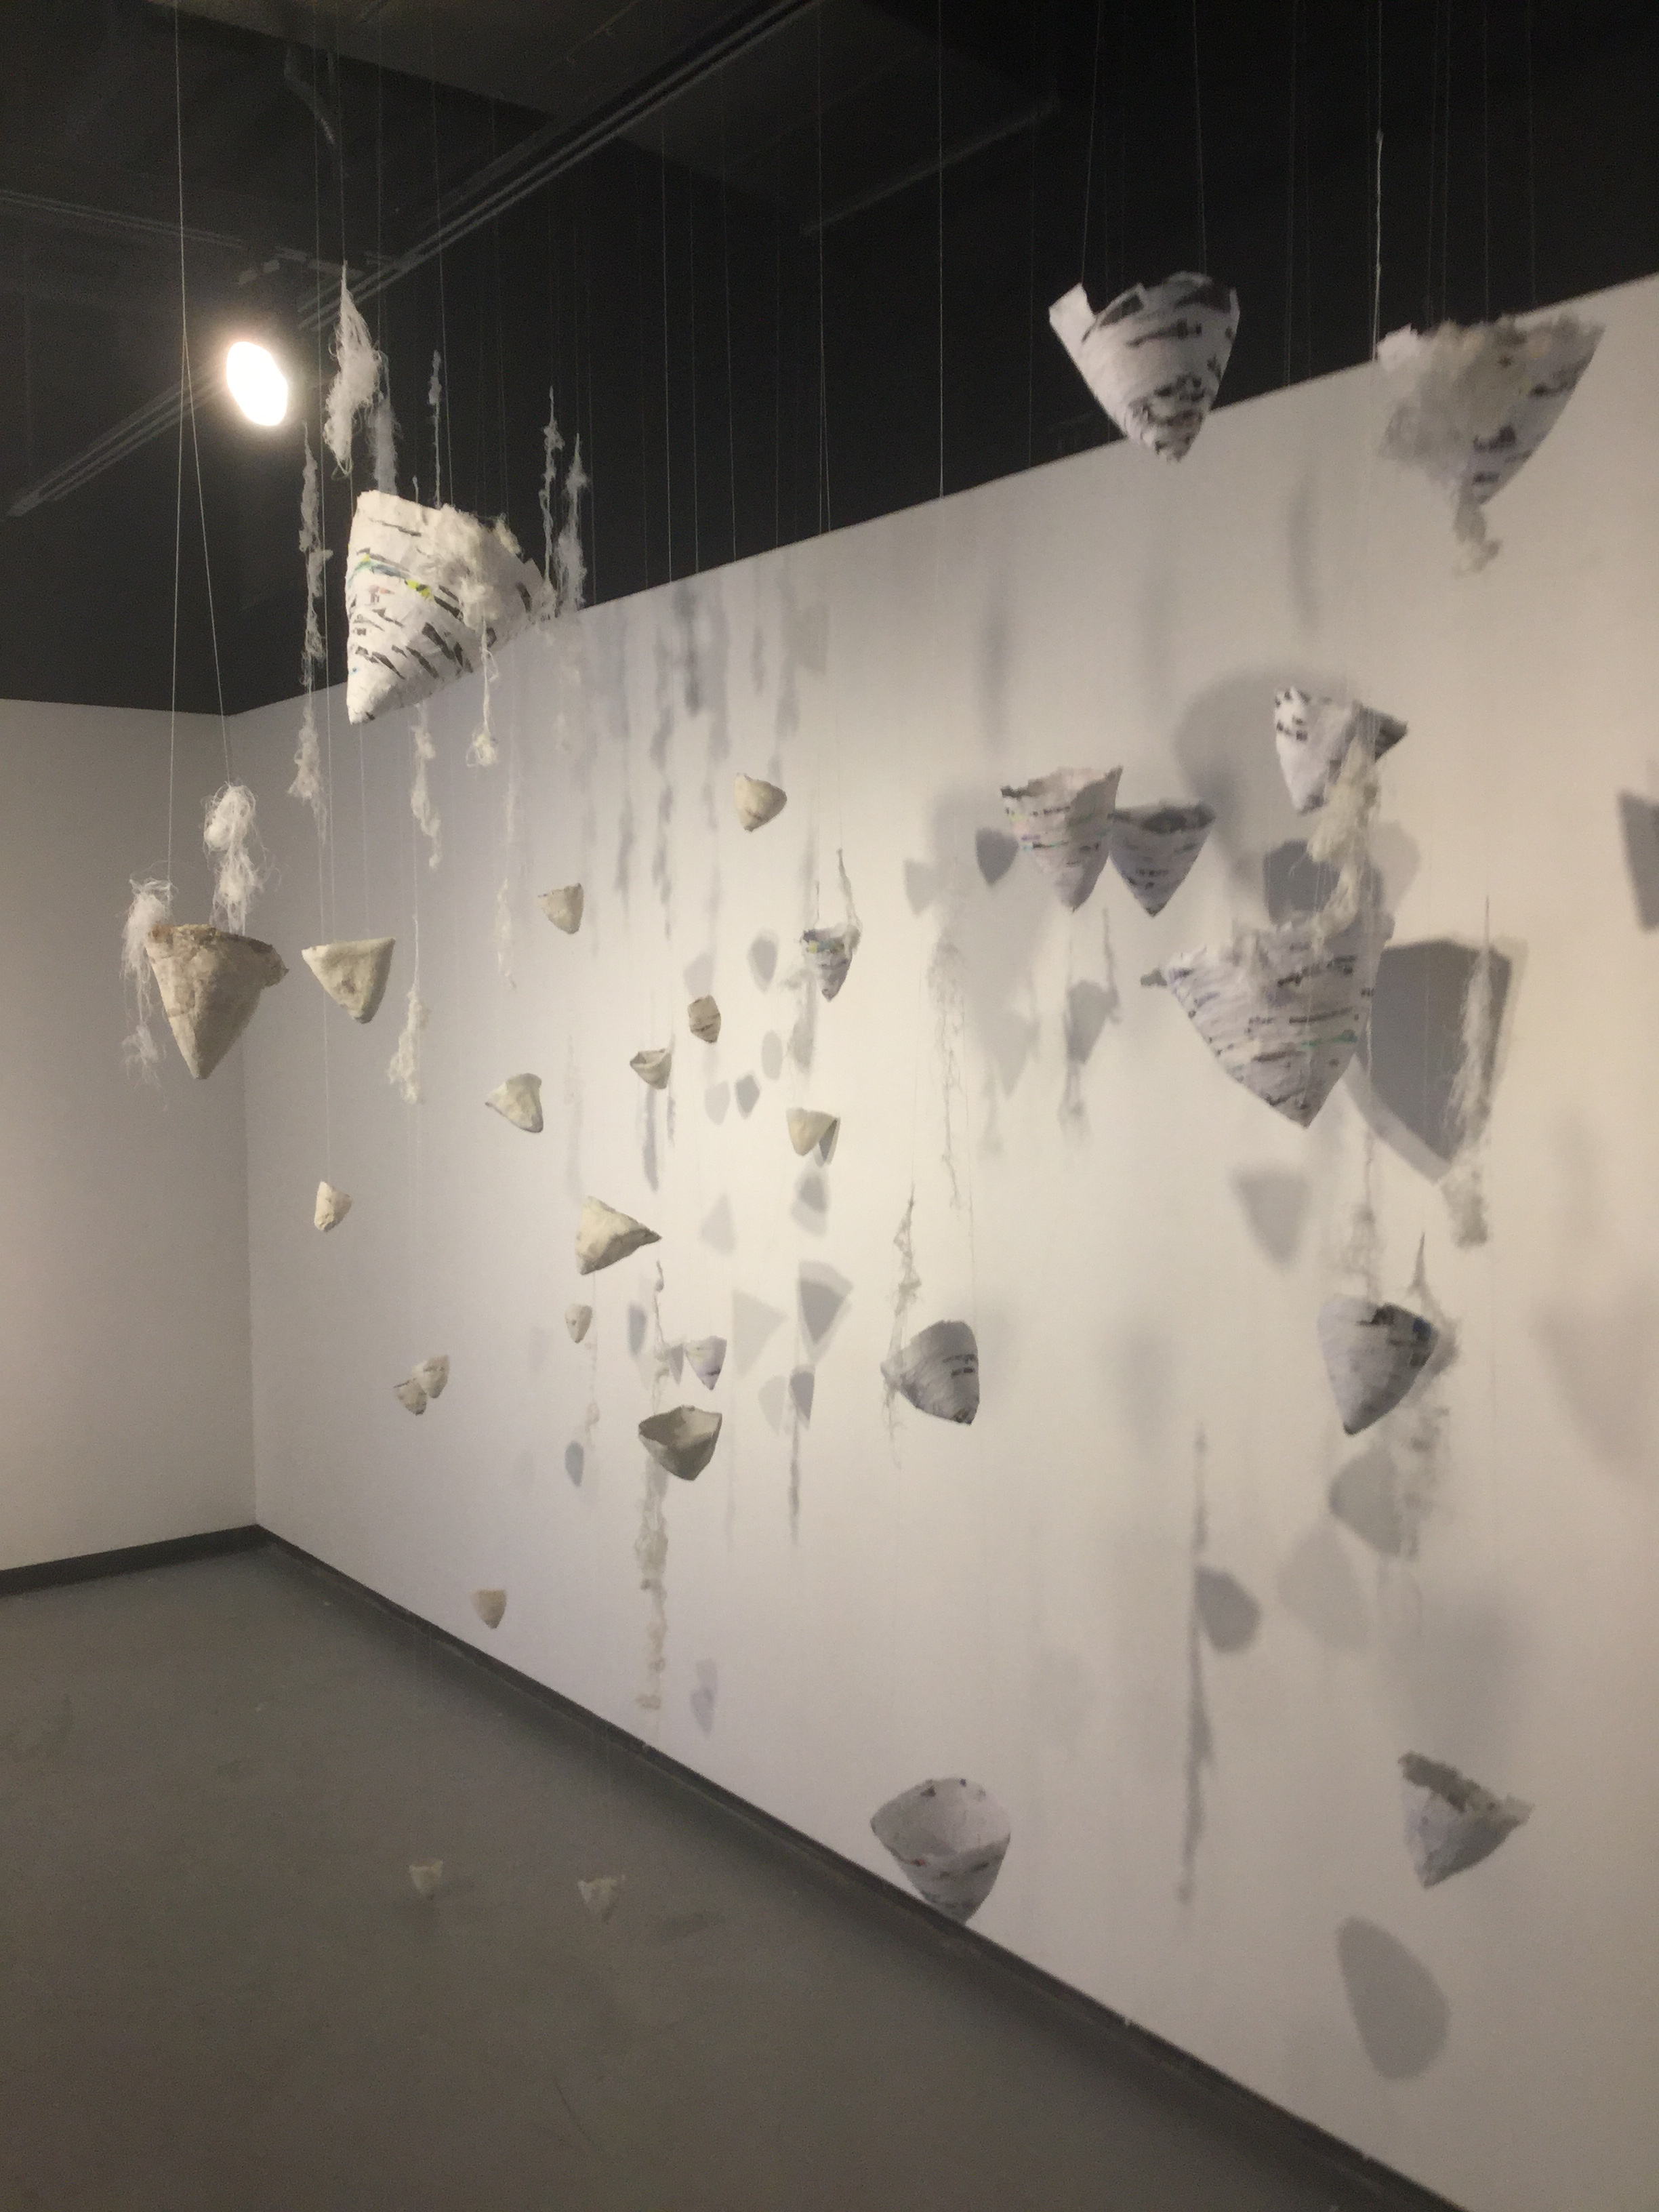 Untitled Installation    Amy Williams  Collected Paper, Porcelain Slip, Thread, Wire, 2017  12'x6'x4'  $800.00